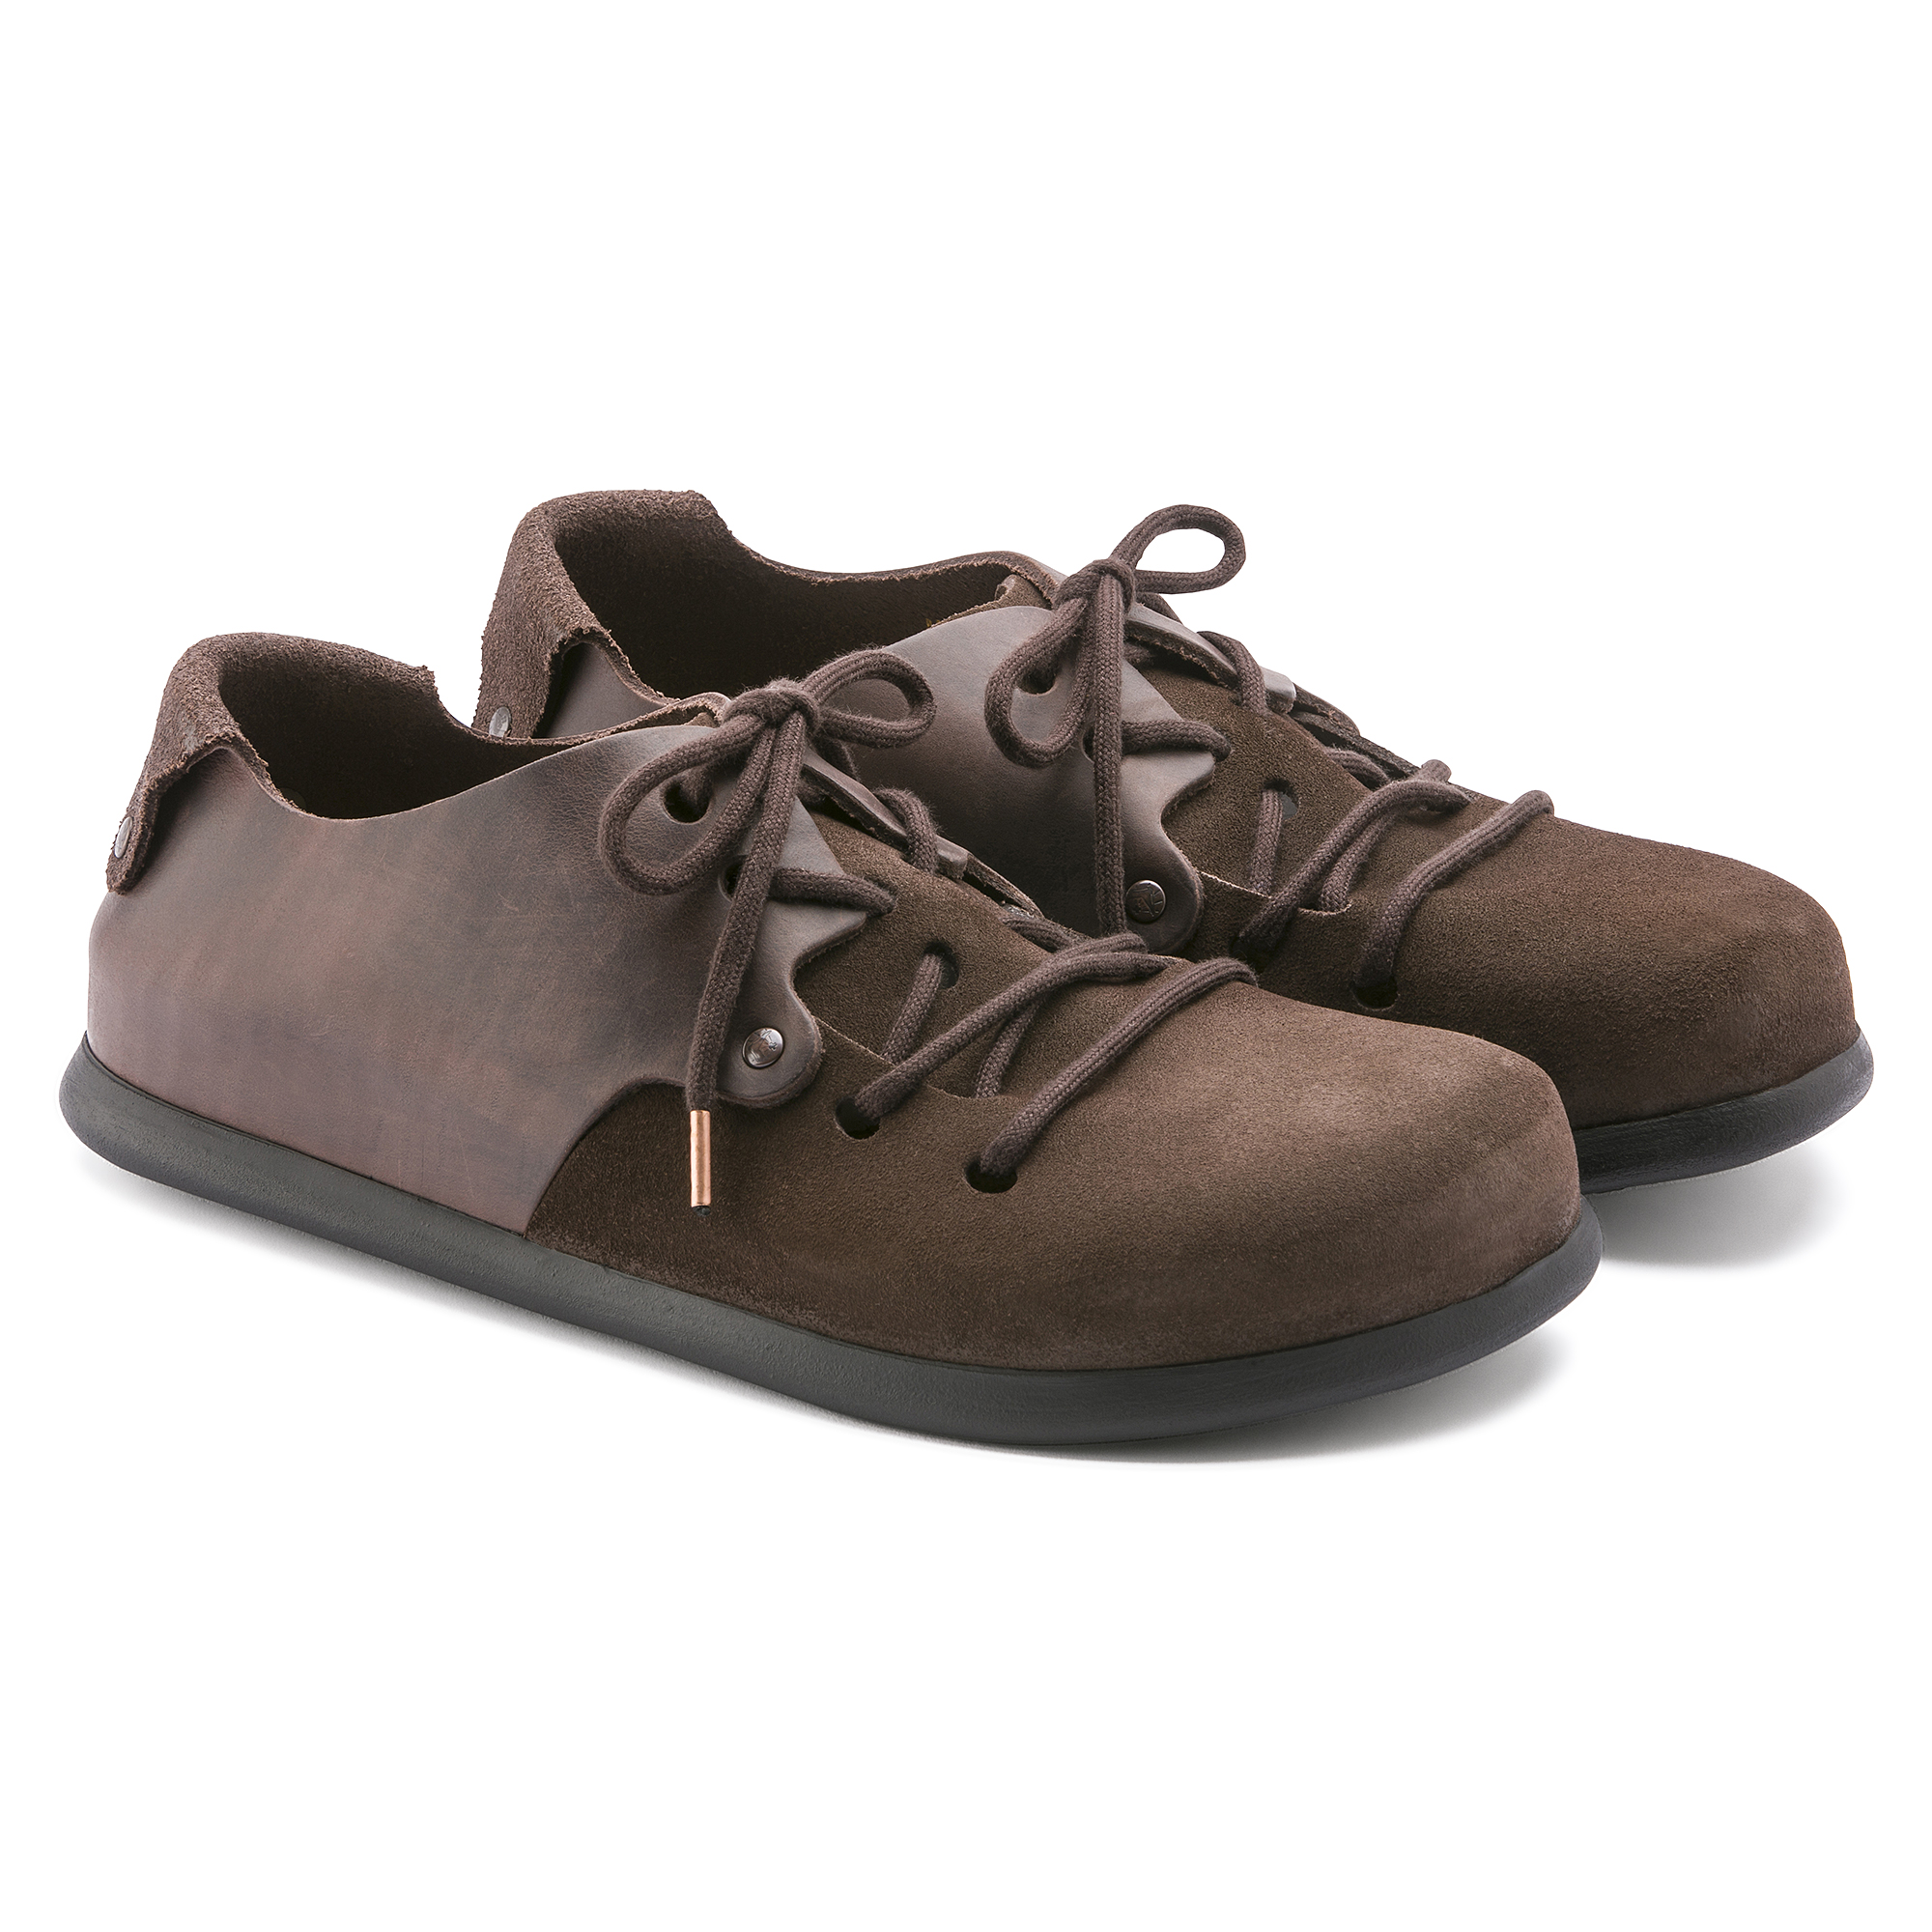 low priced 72b57 1d96a Montana Oiled Leather/Suede Leather Ebony